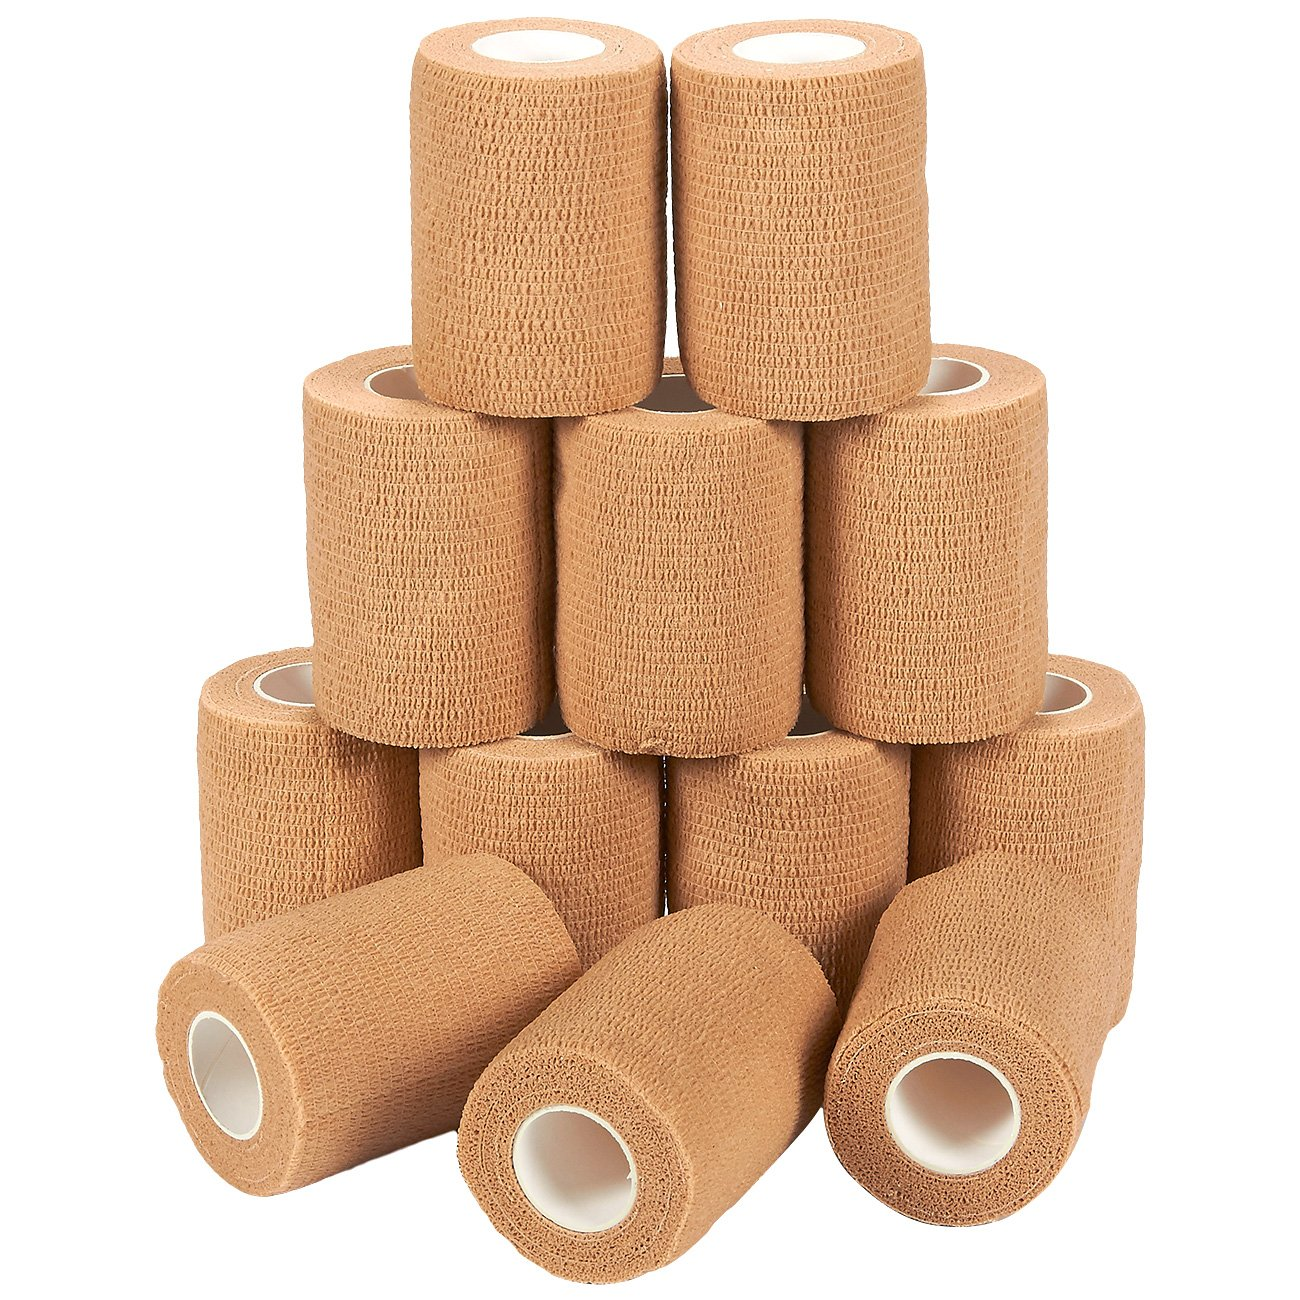 Self Adherent Wrap - 12 Pack of Cohesive Bandage Medical Vet Tape in Tan for First Aid, Sports, Wrist, Ankle, 3 Inches x 5 Yards by Juvale